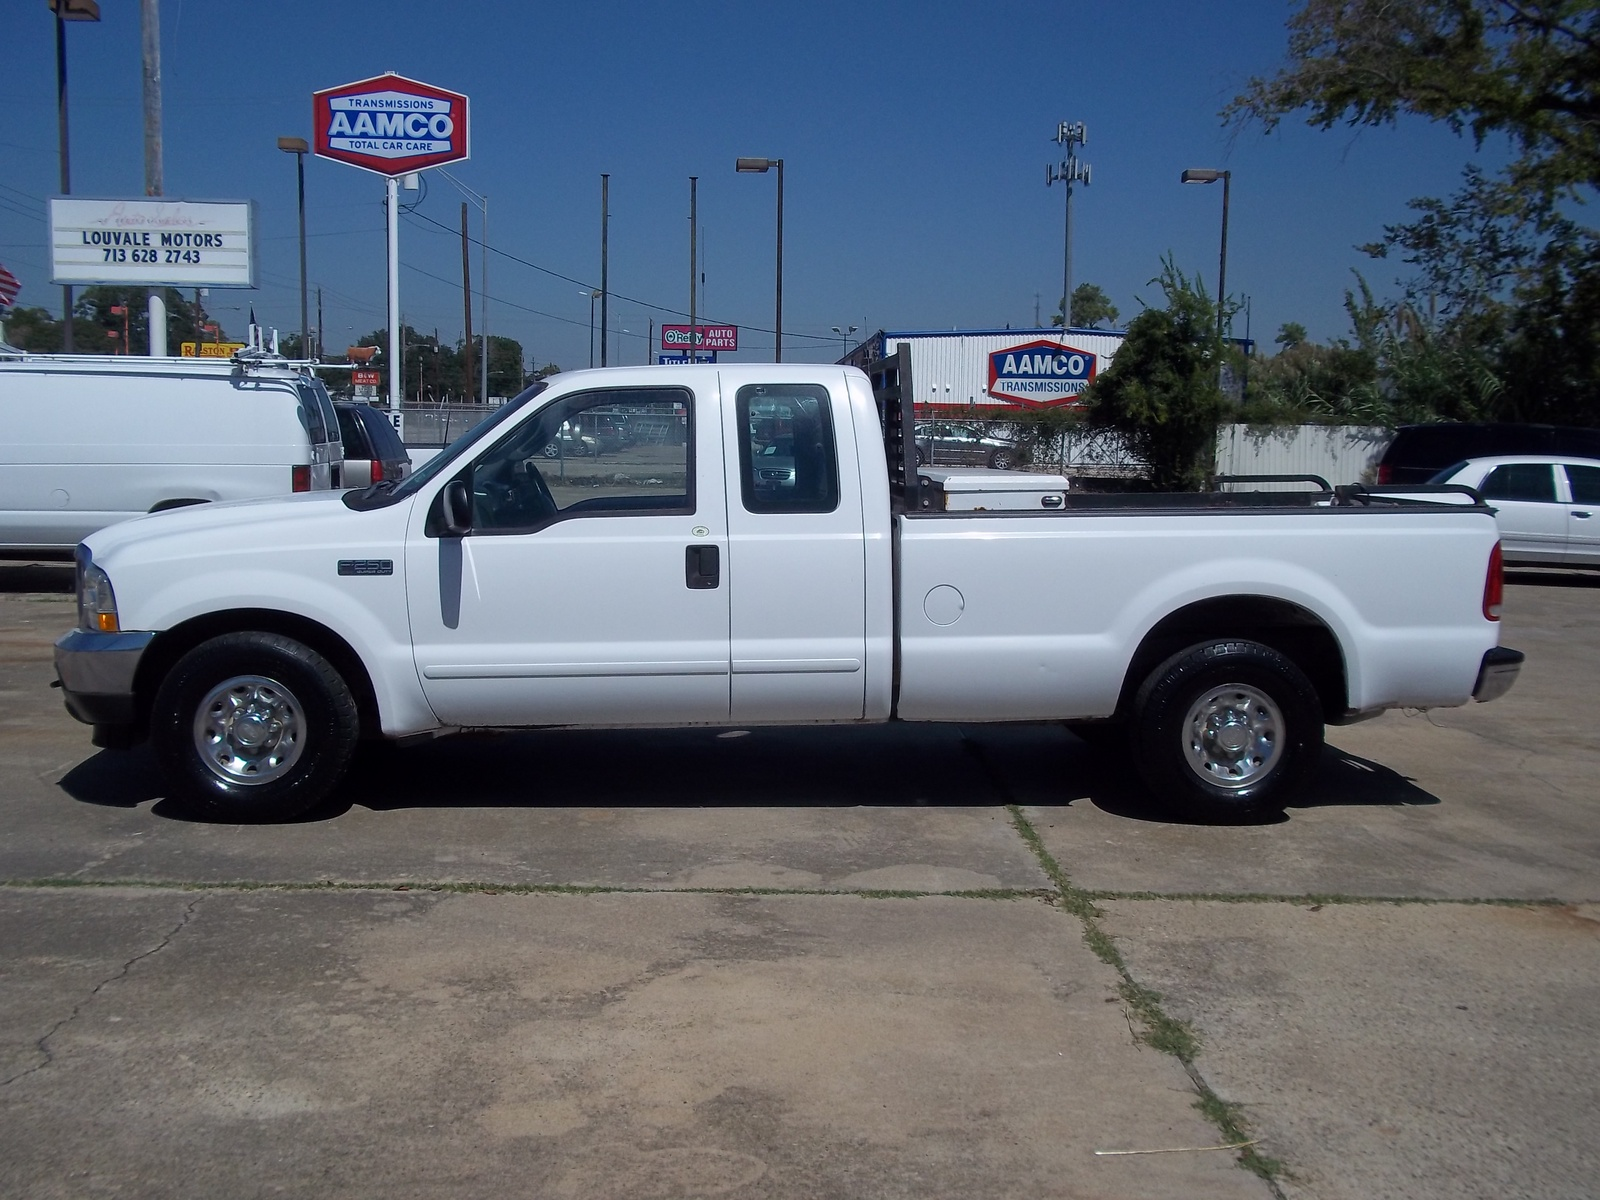 Cars For Sale For Sale In Houston Tx Page 2 Cargurus: Used Ford F-250 Super Duty For Sale Houston, TX Page 2